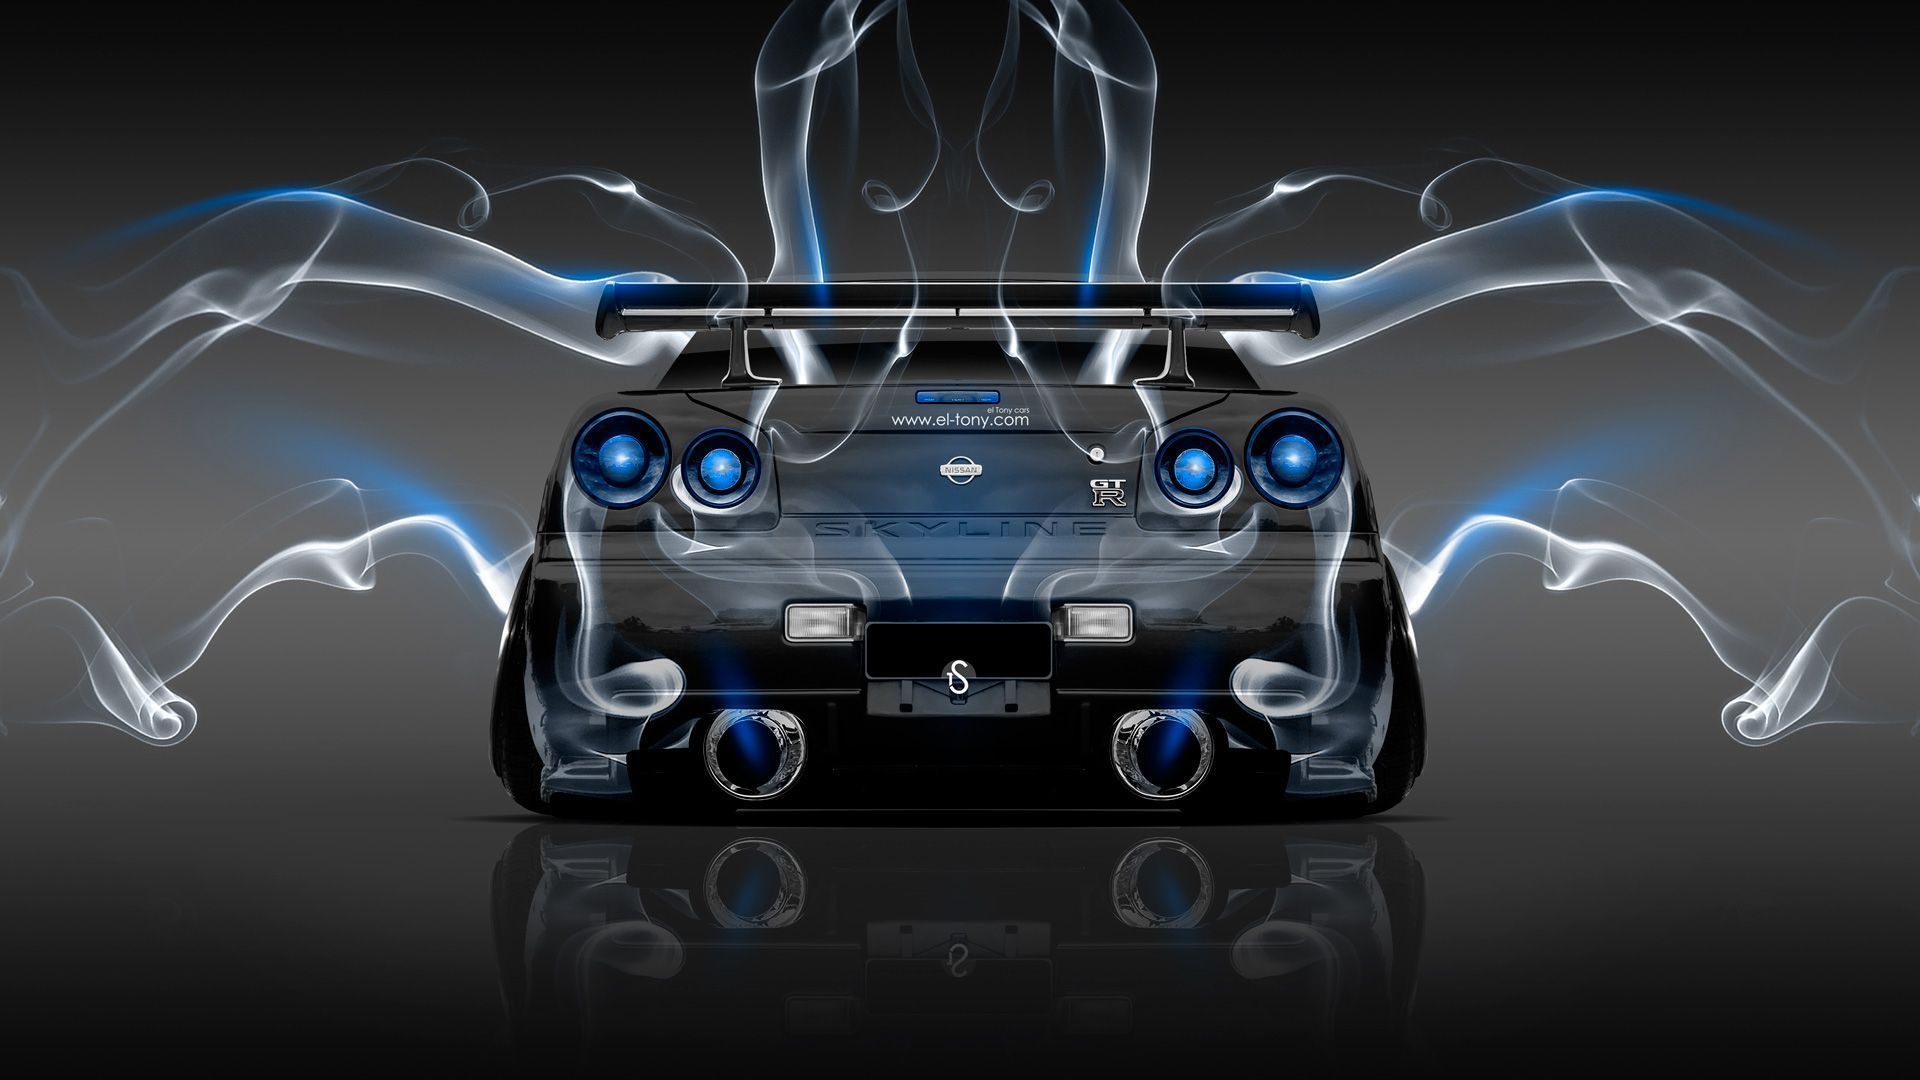 Exceptionnel Nissan Skyline GTR R34 JDM Back Smoke Car 2014 « El Tony